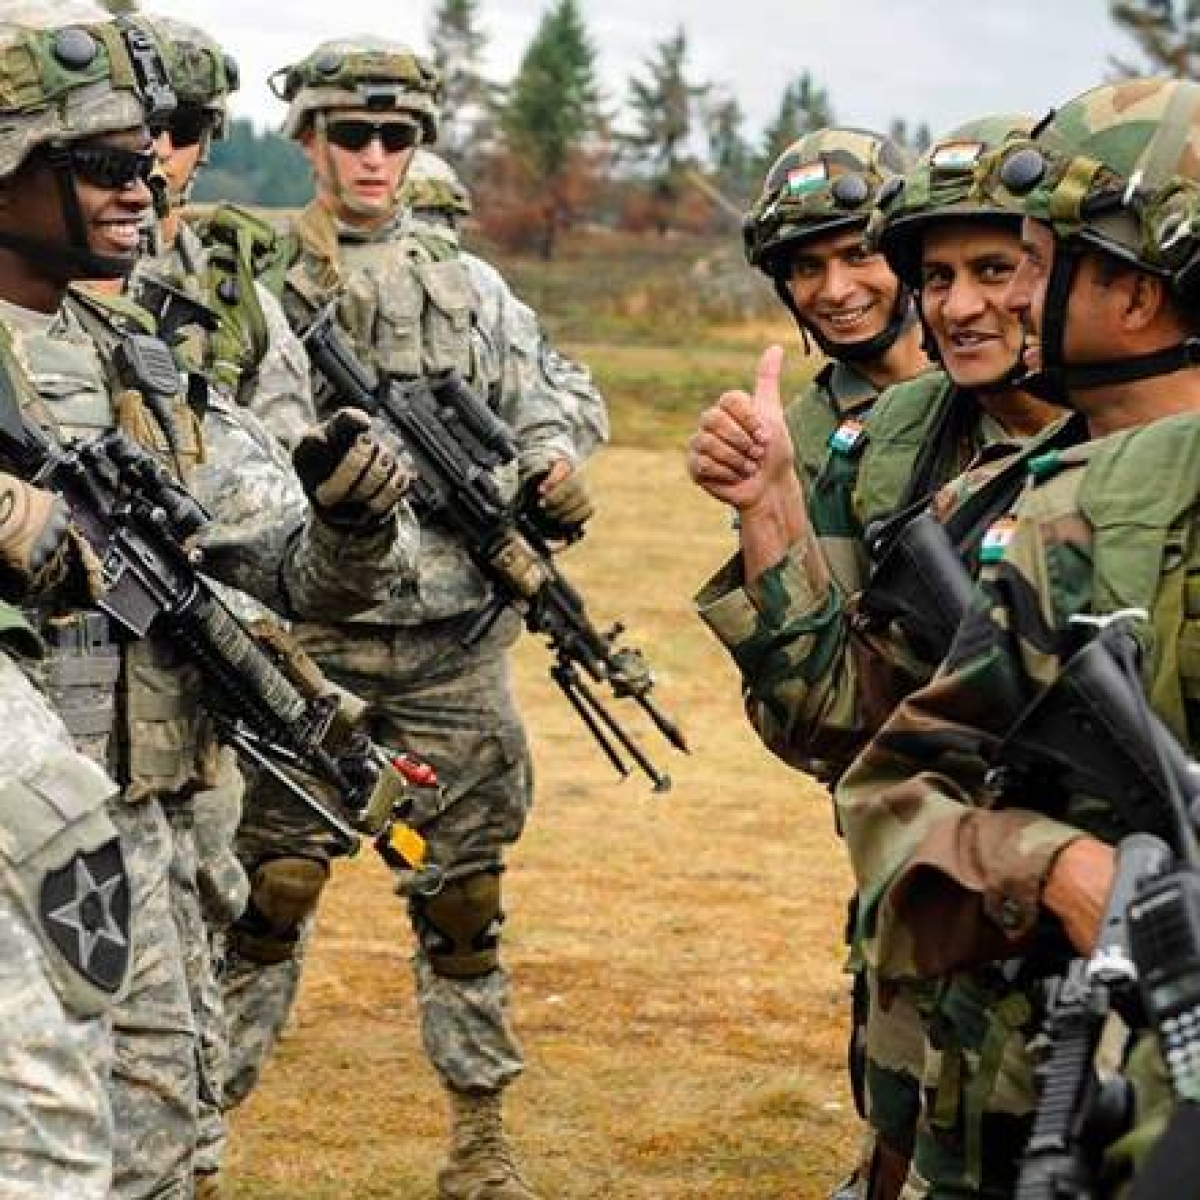 US Army is with India in a conflict